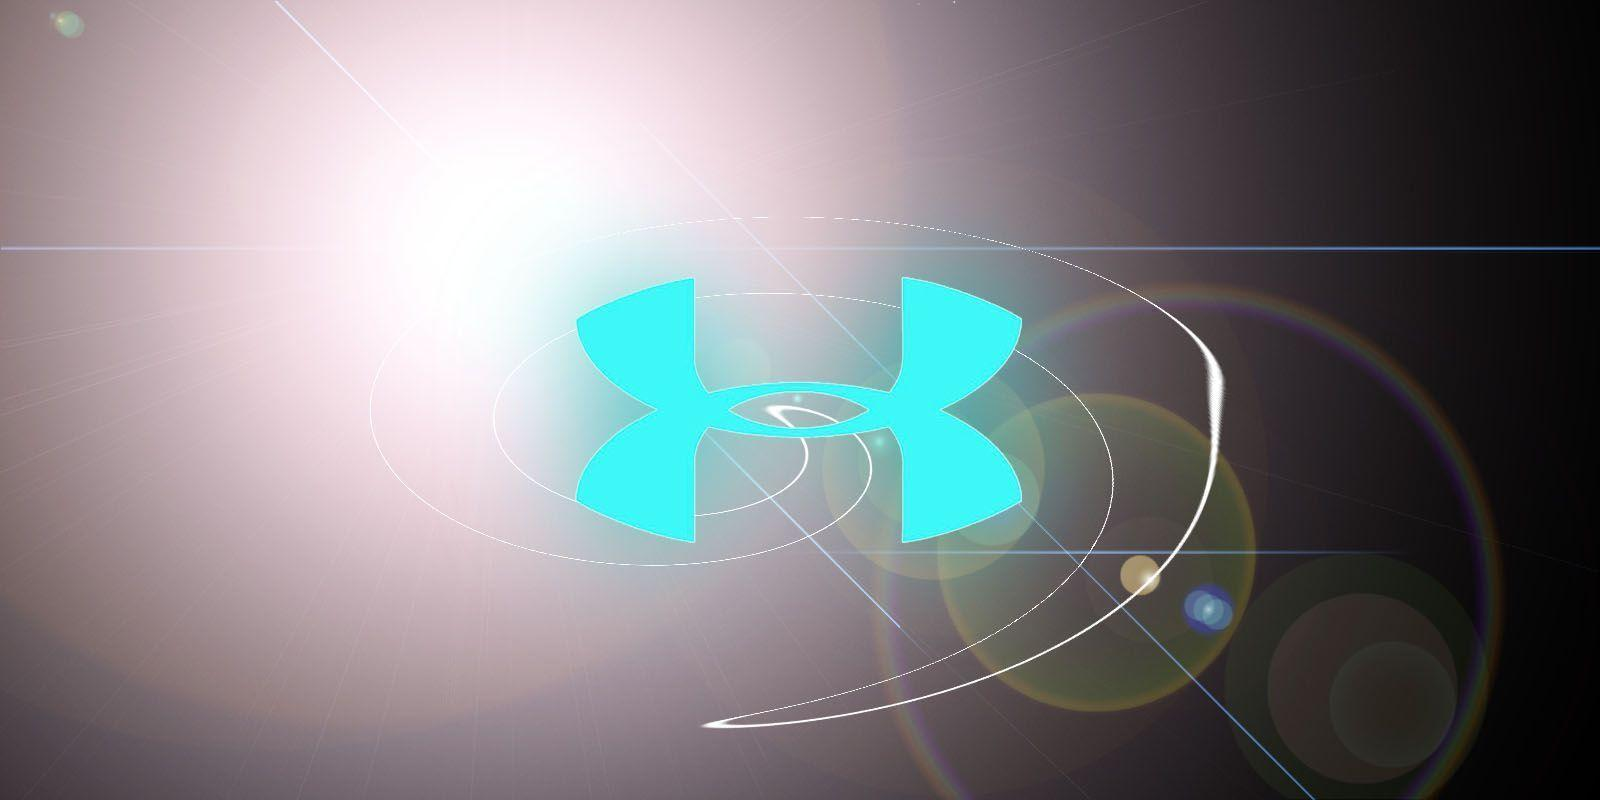 under armour wallpapers for facebook - photo #1